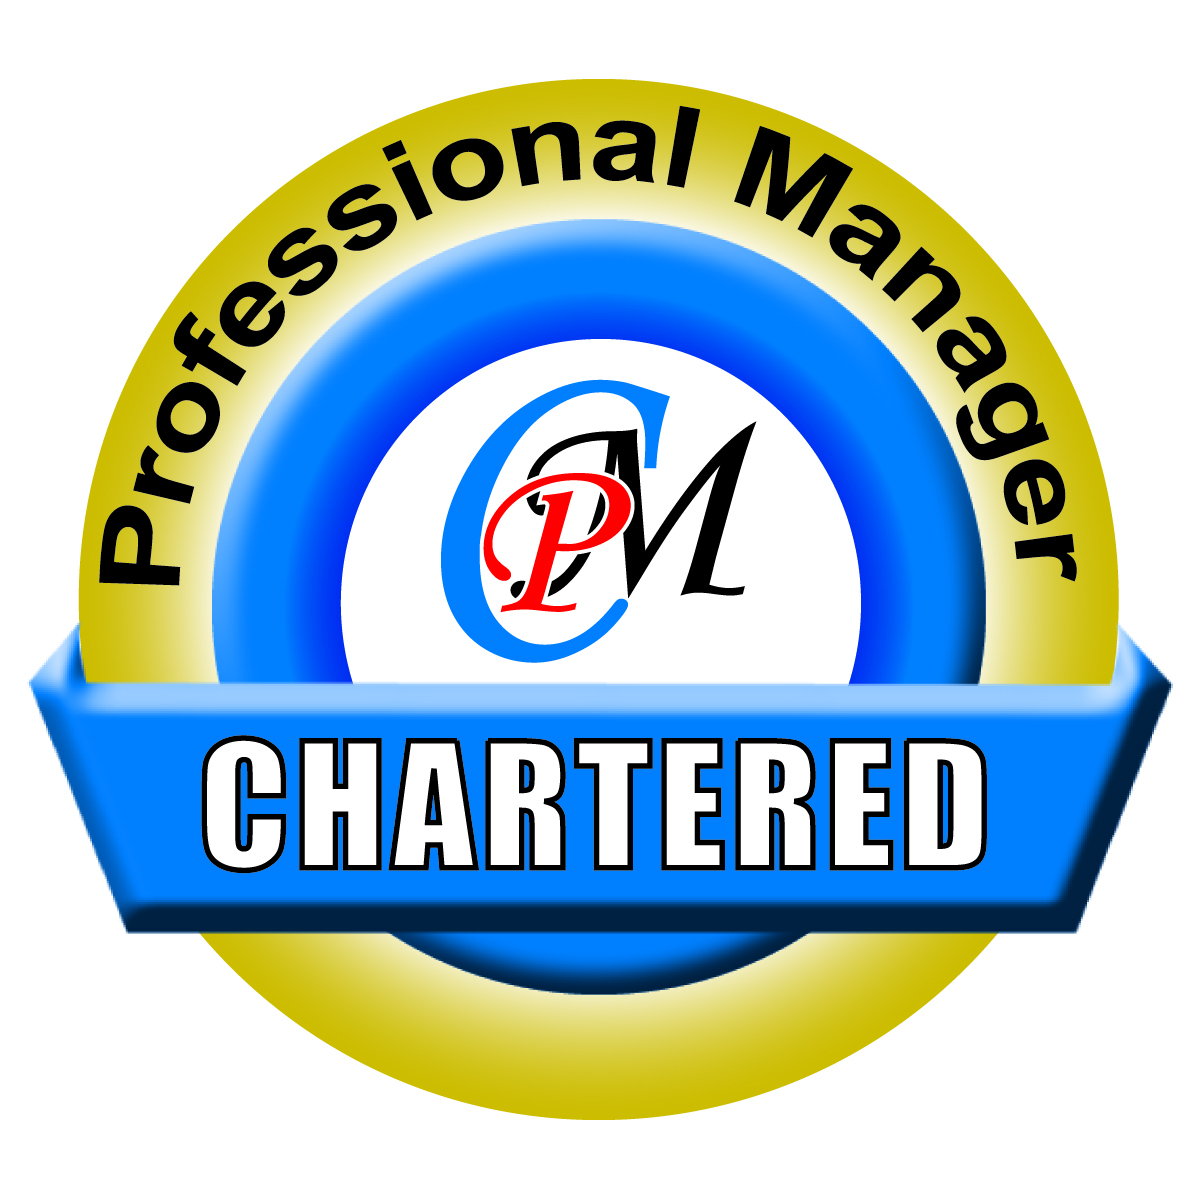 Chartered Professional Manager [CPM]